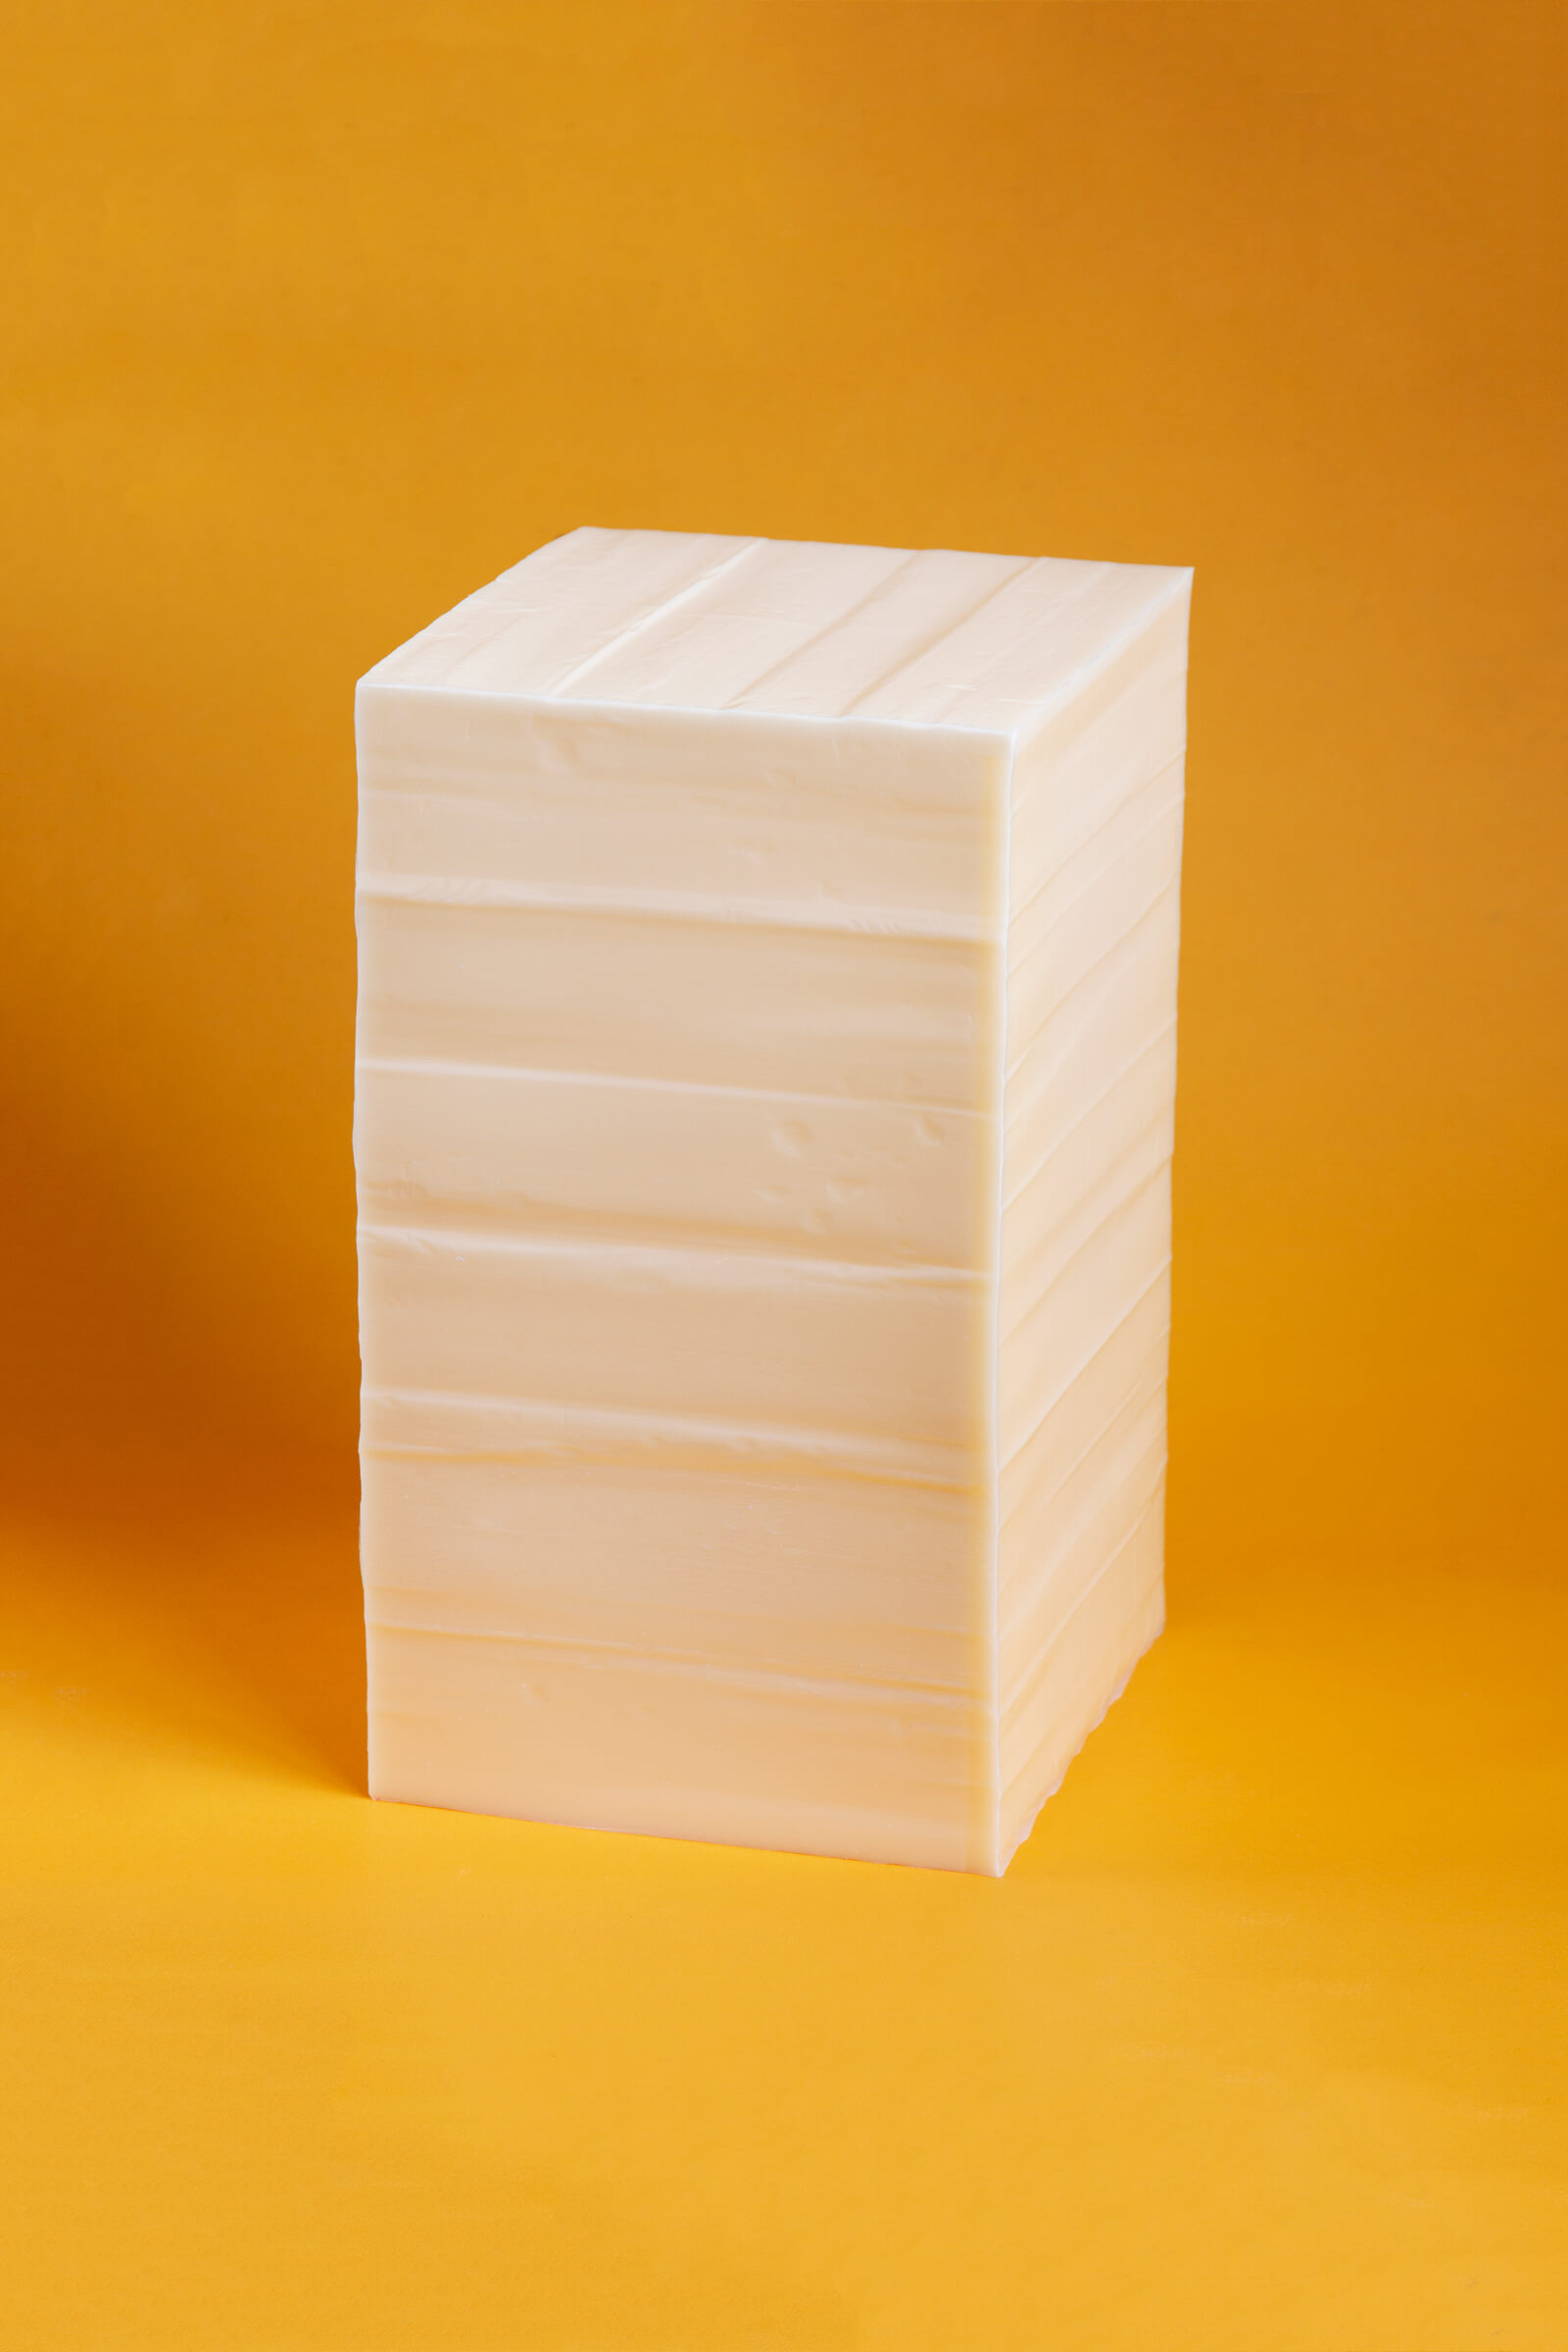 'Butter' (stool), various sizes, polyurethane, pigments, 2020. Commissioned by MACRO – Museum of Contemporary Art of Rome